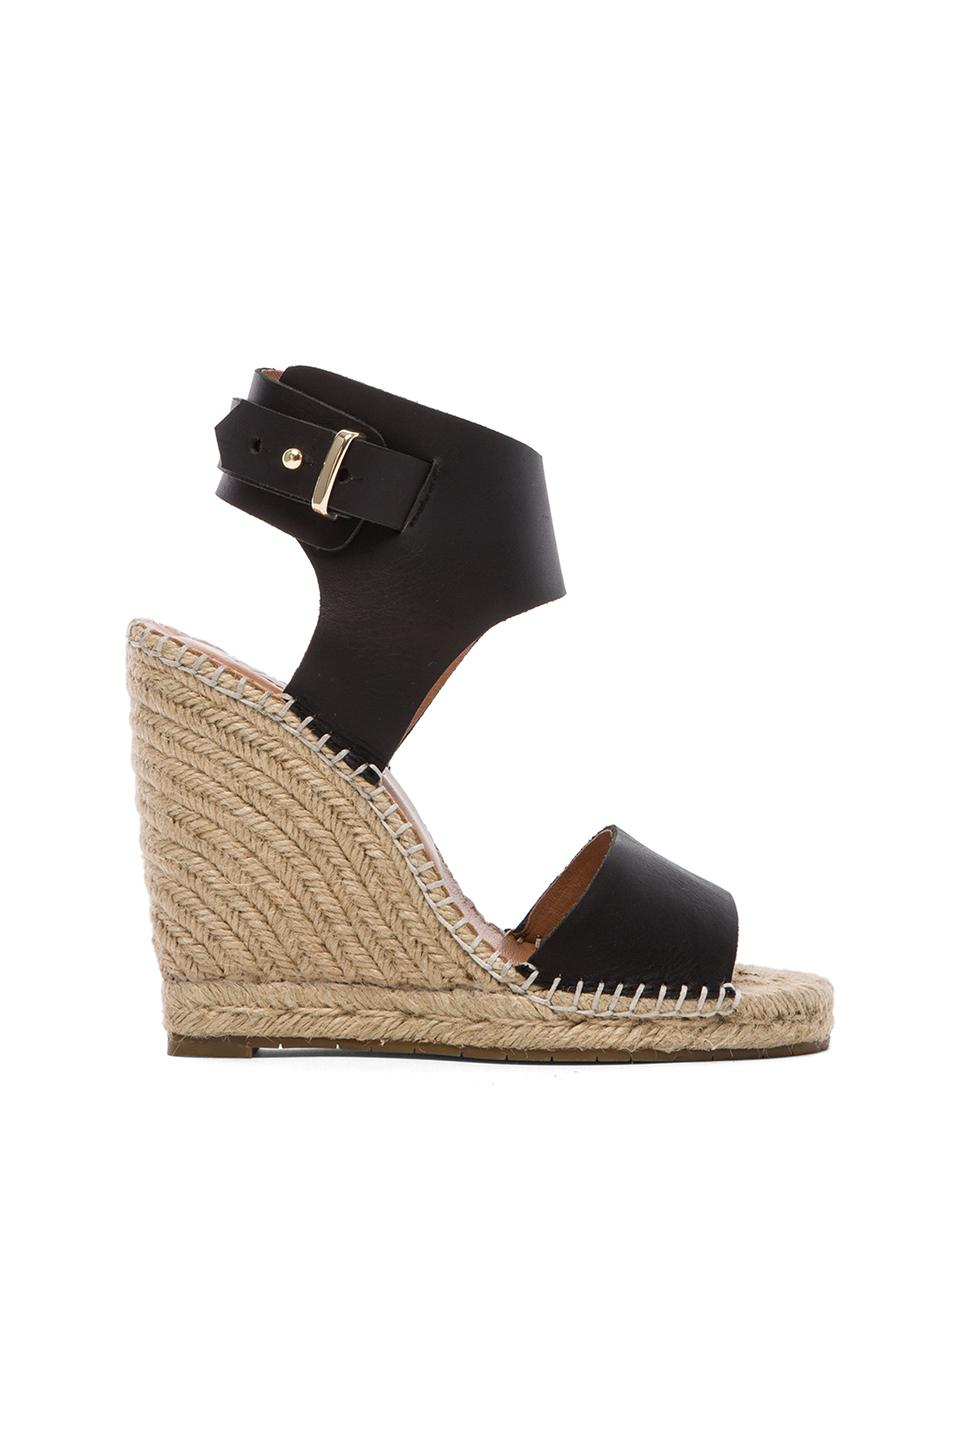 Joie Palo Wedge in Black